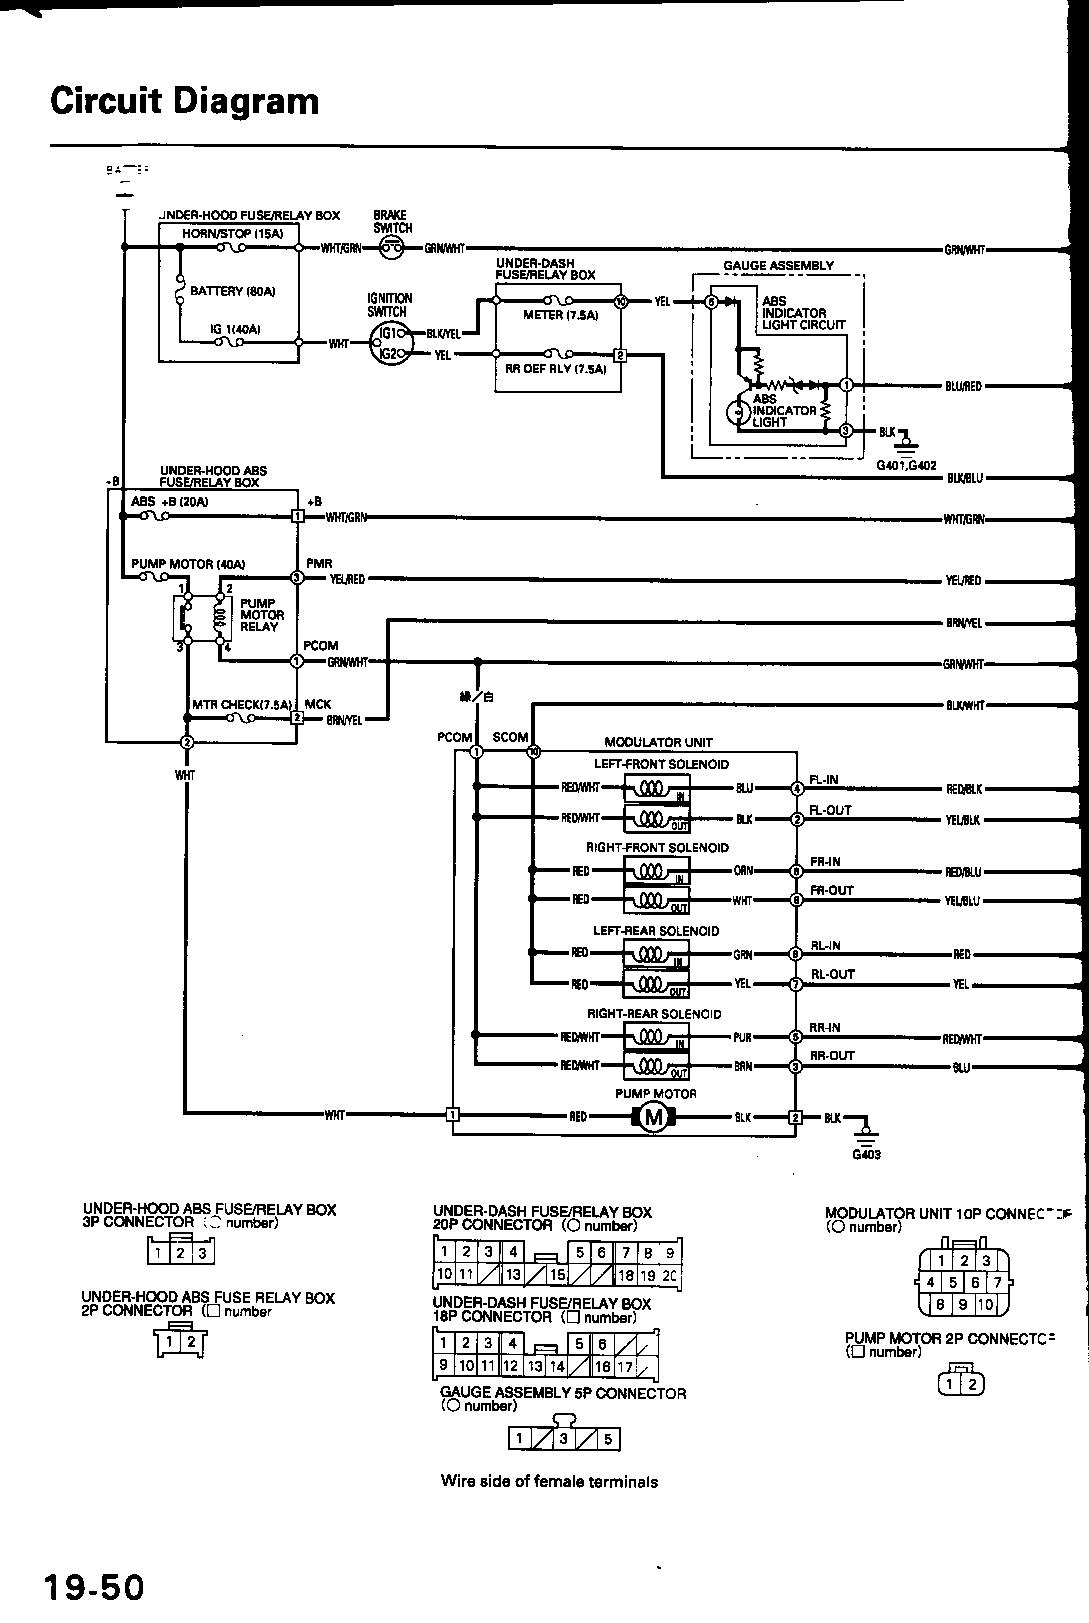 2001 honda civic wiring diagram stereo for 3 way switch with multiple lights 94 speaker get free image